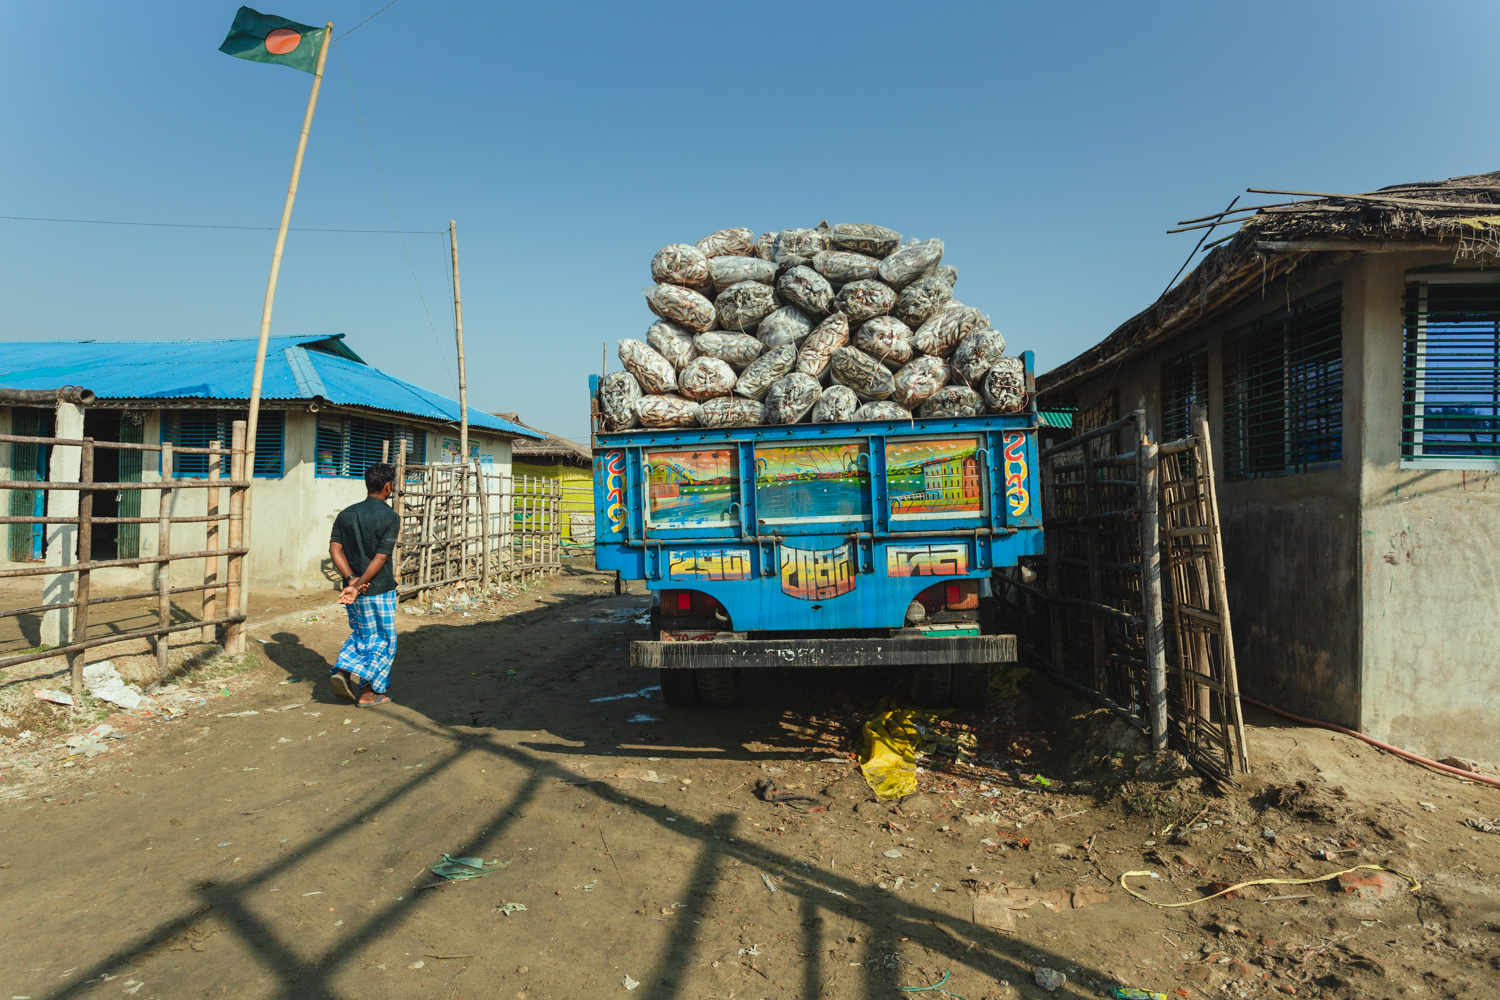 Truck load of dried fish ready for distribution from Dhaka - Bangladesh Dried Fish Village..